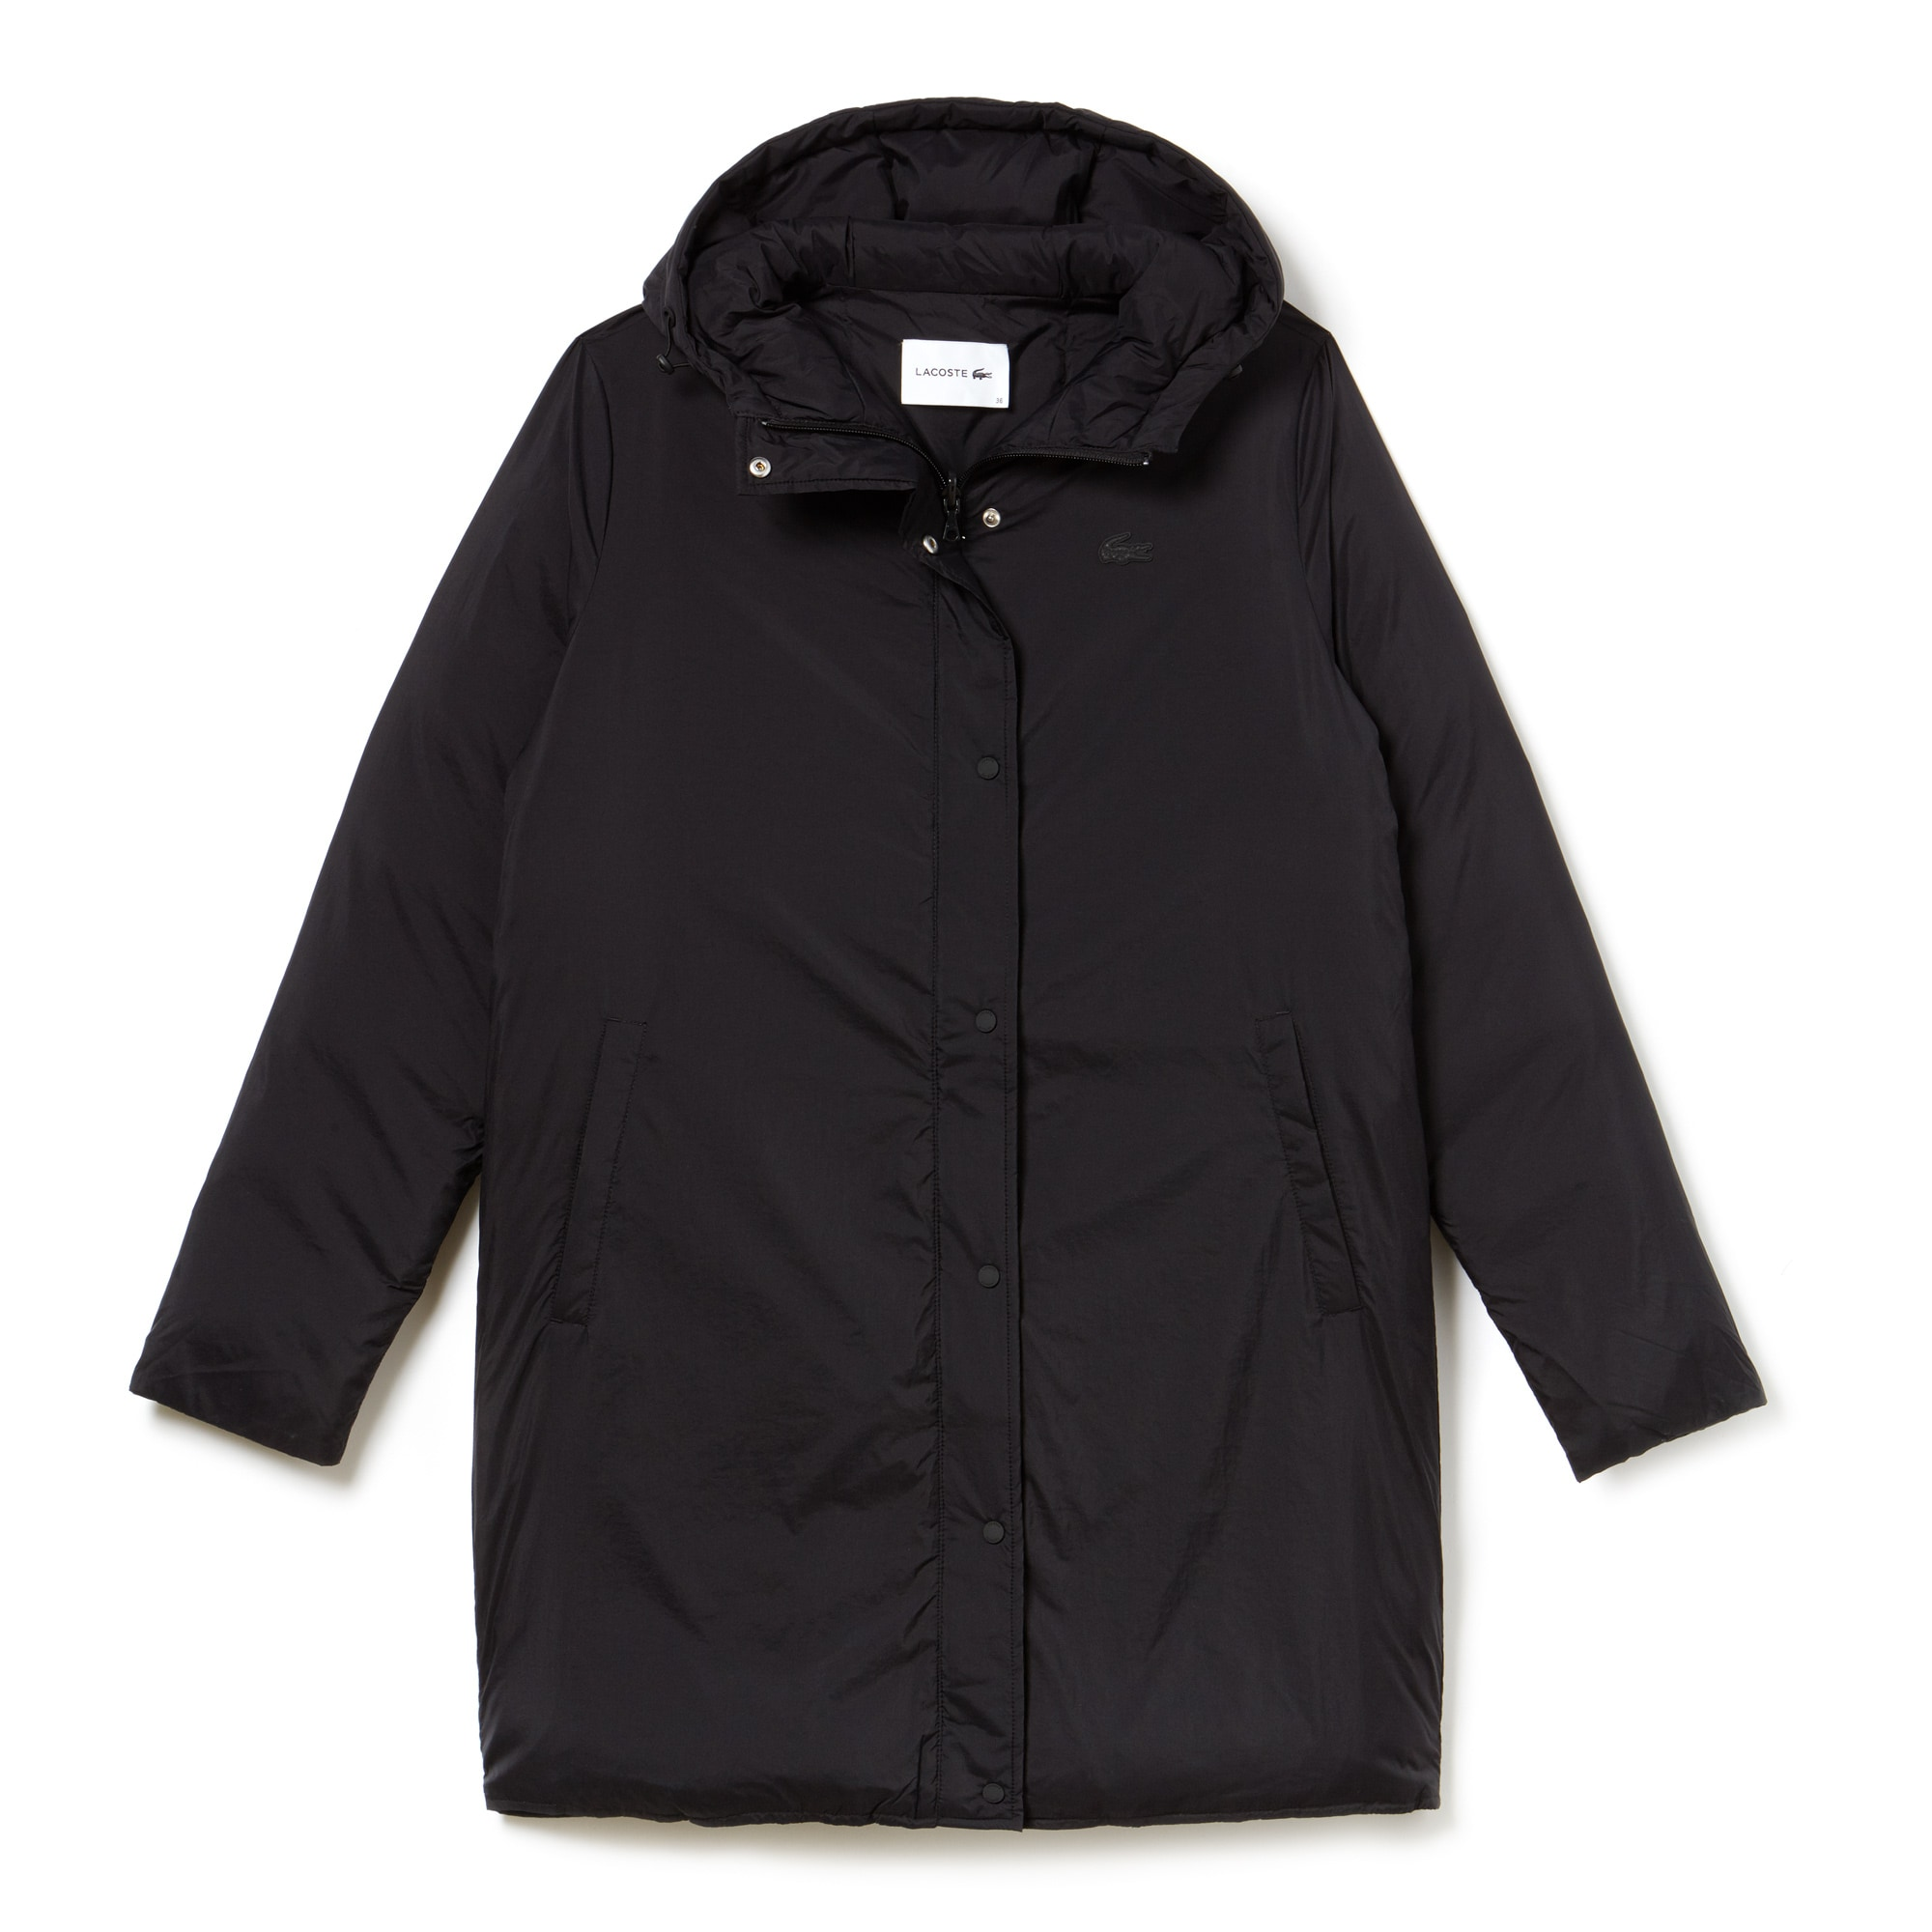 Womens Reversible Hooded Nylon Quilted Jacket Lacoste